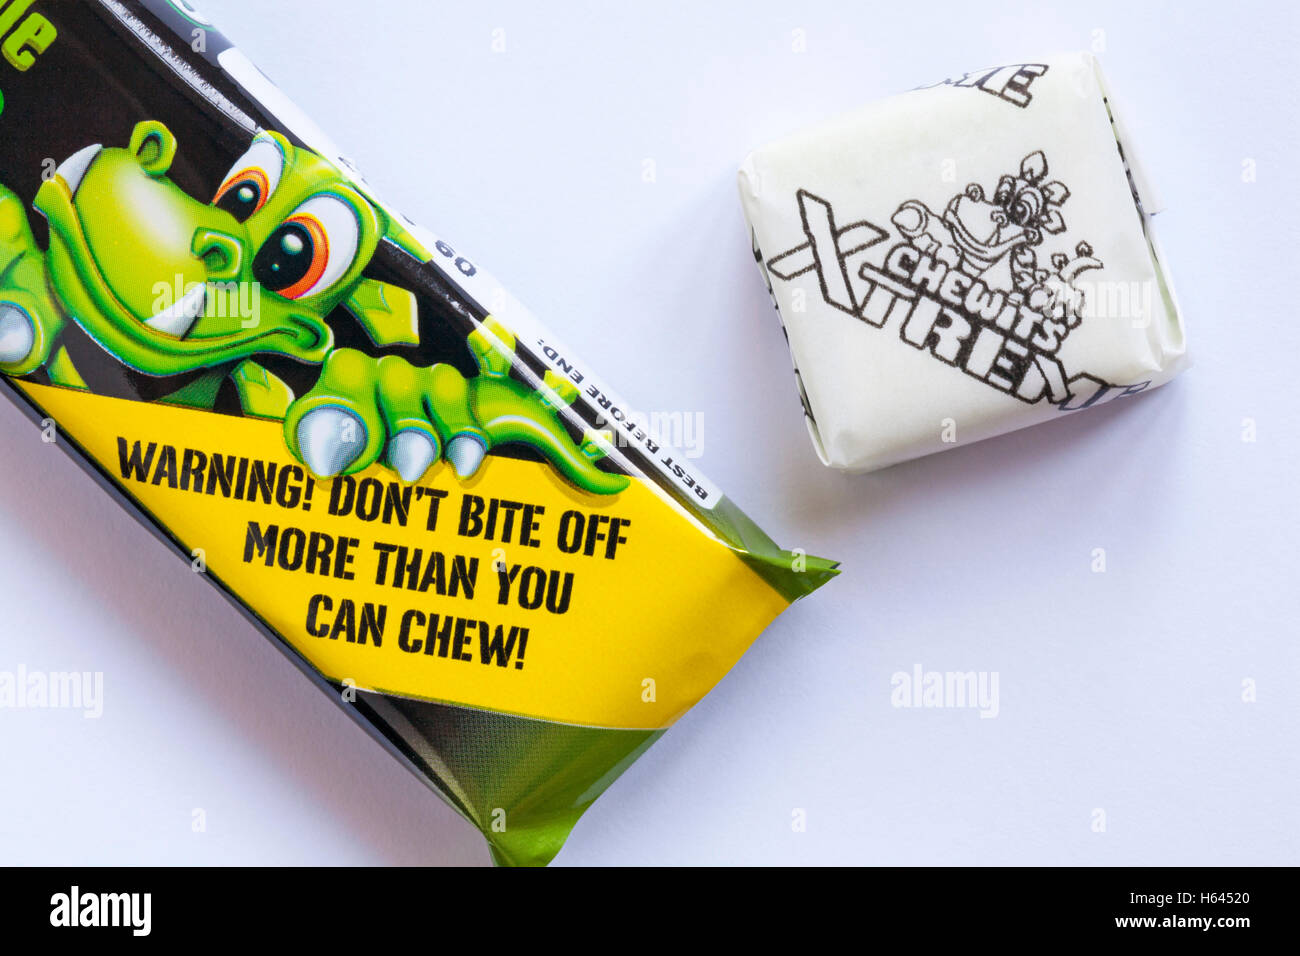 Warning don't bite off more than you can chew - detail on pack of Extreme Chewits extremely sour apple with - Stock Image